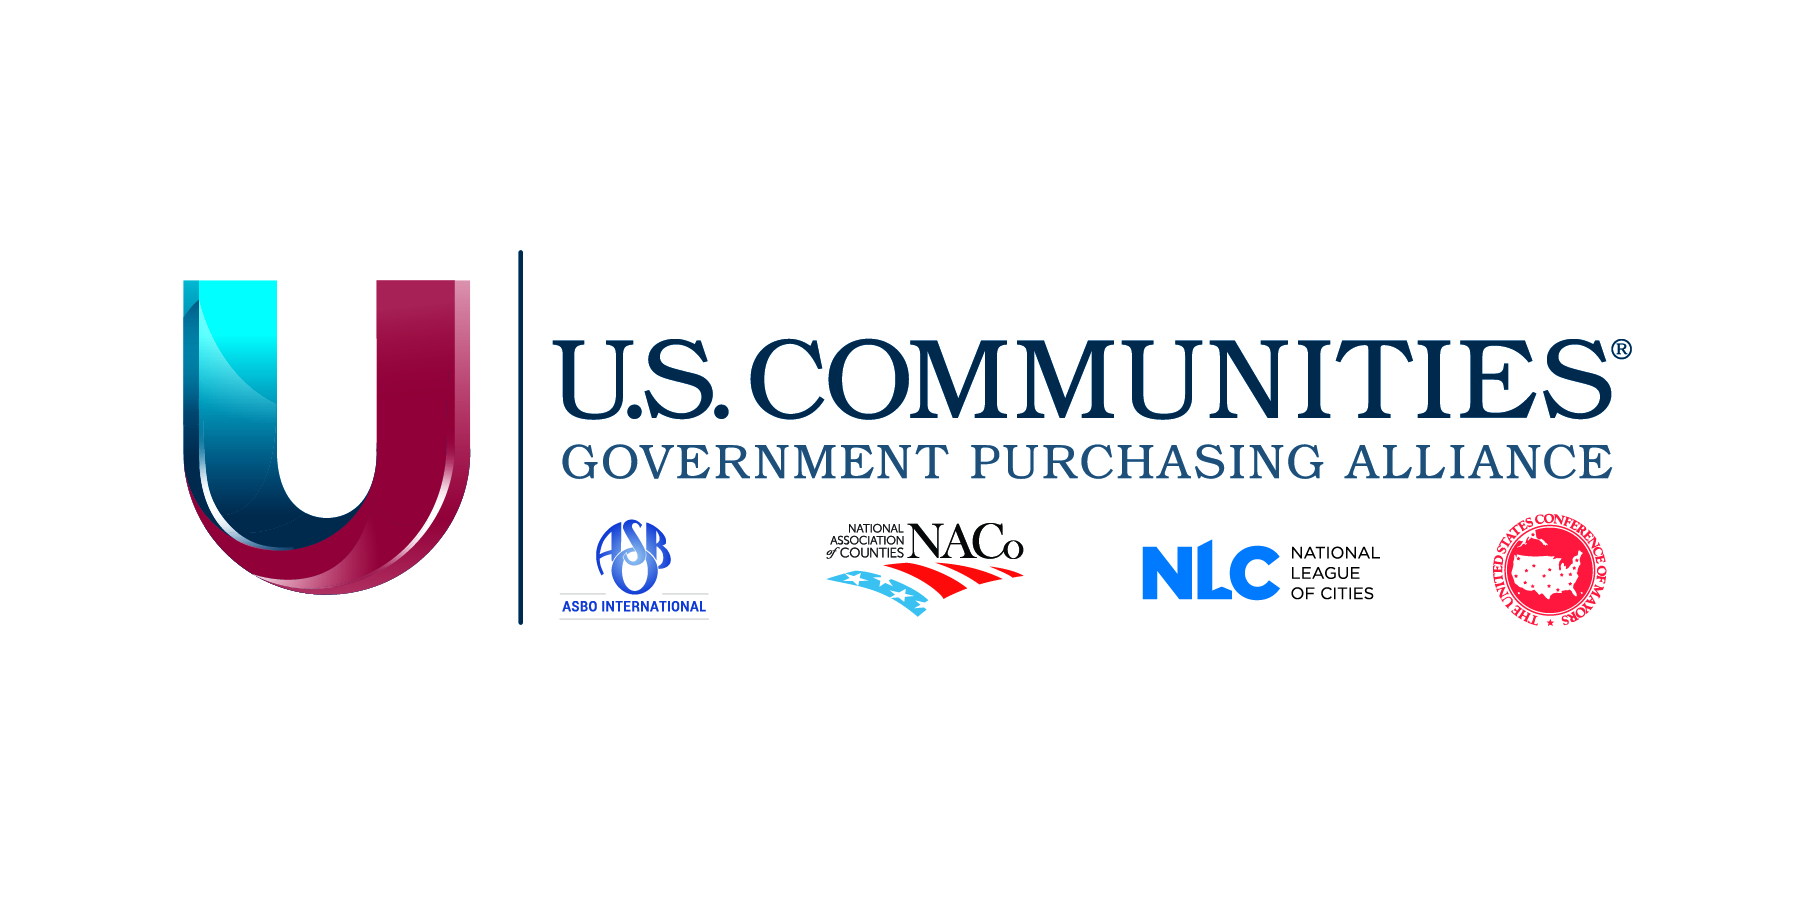 2016 U.S. Communities - Government Purchasing Alliance